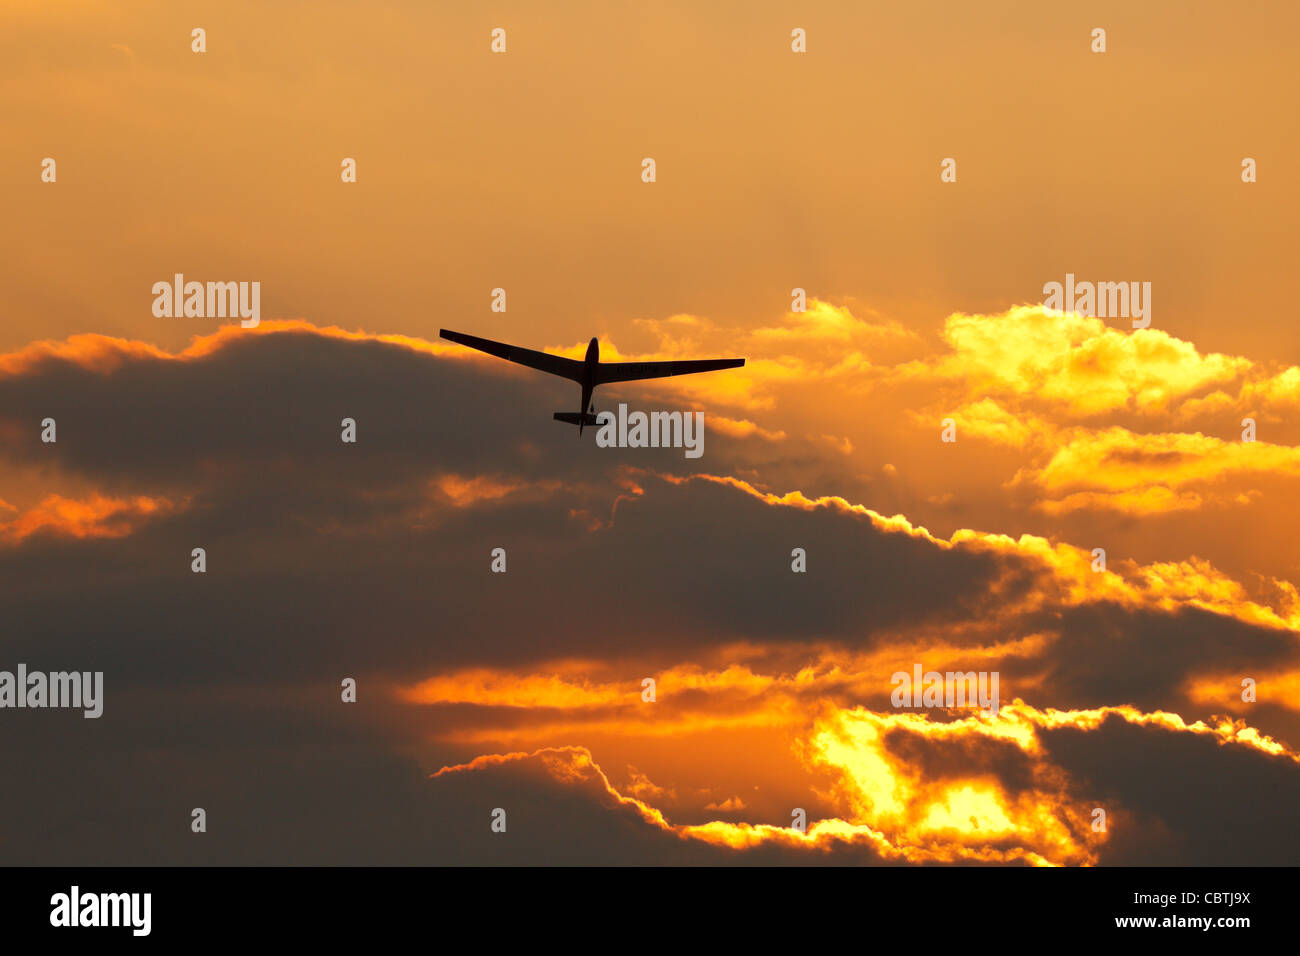 ASK13 Glider launching at sunset, Crusaders Gliding Club,  Kingsfield Airstrip, Dhekelia, Cyprus. - Stock Image